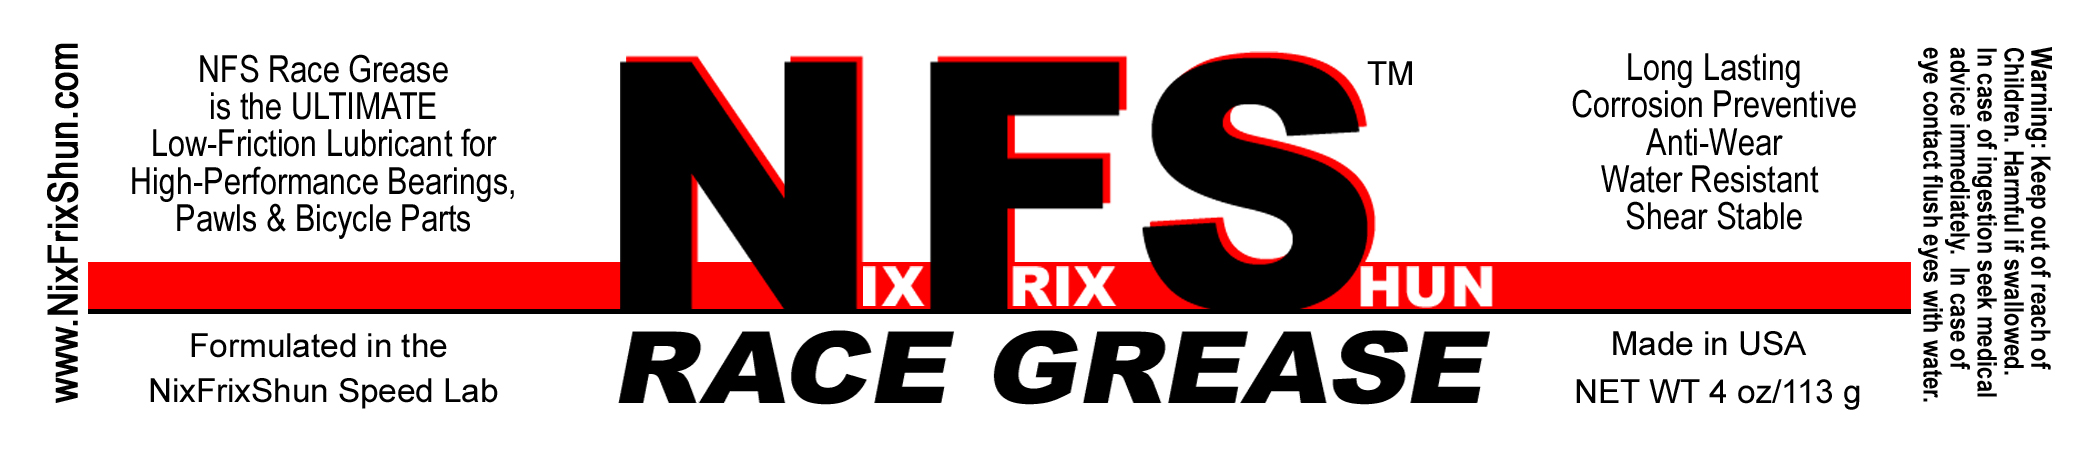 nfs-race-grease-label.jpg